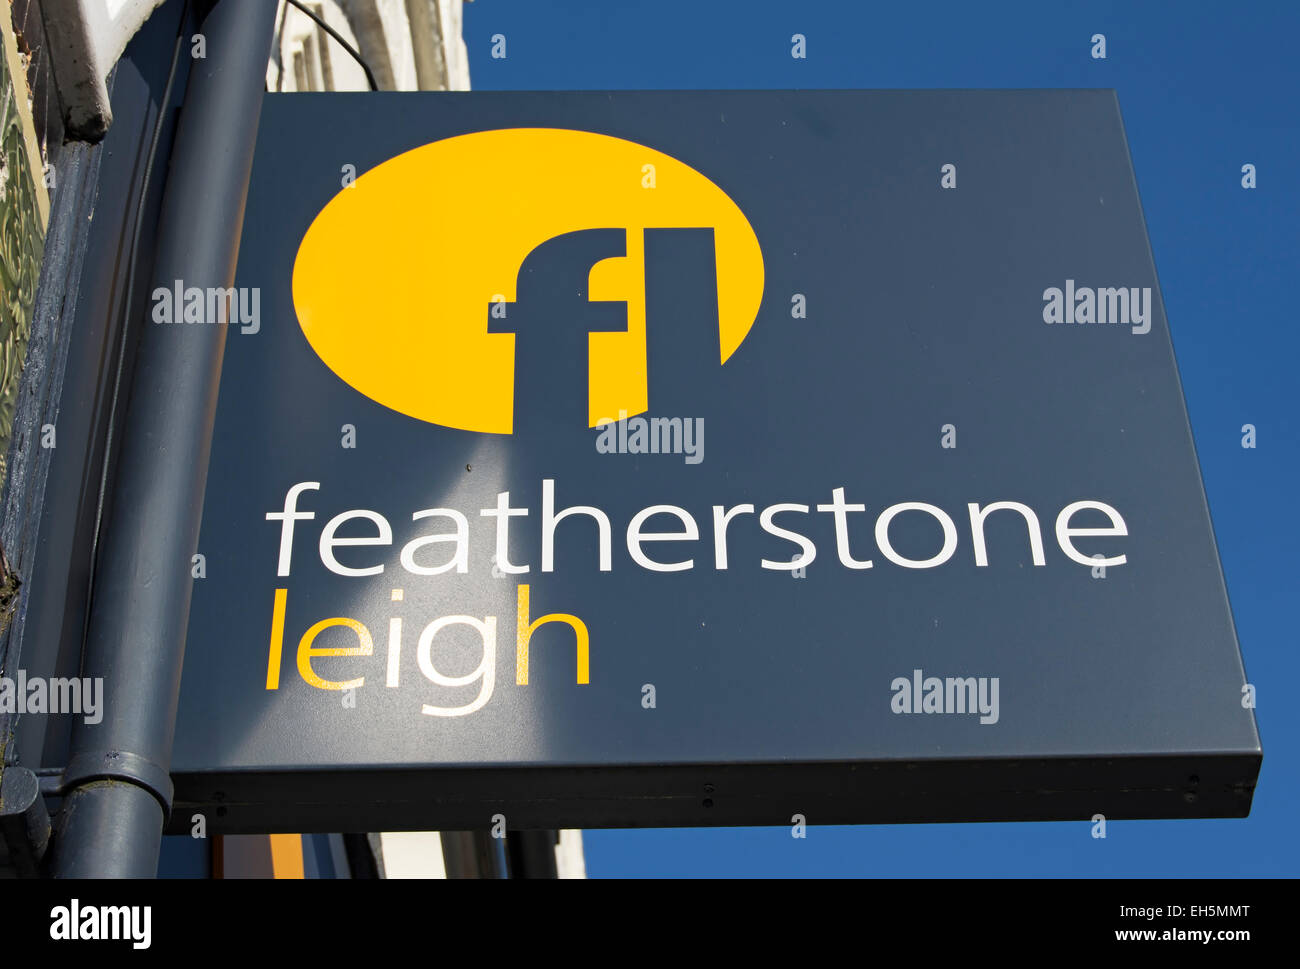 hanging sign at a branch of estate agents featherstone leigh, twickenham, middlesex, england Stock Photo